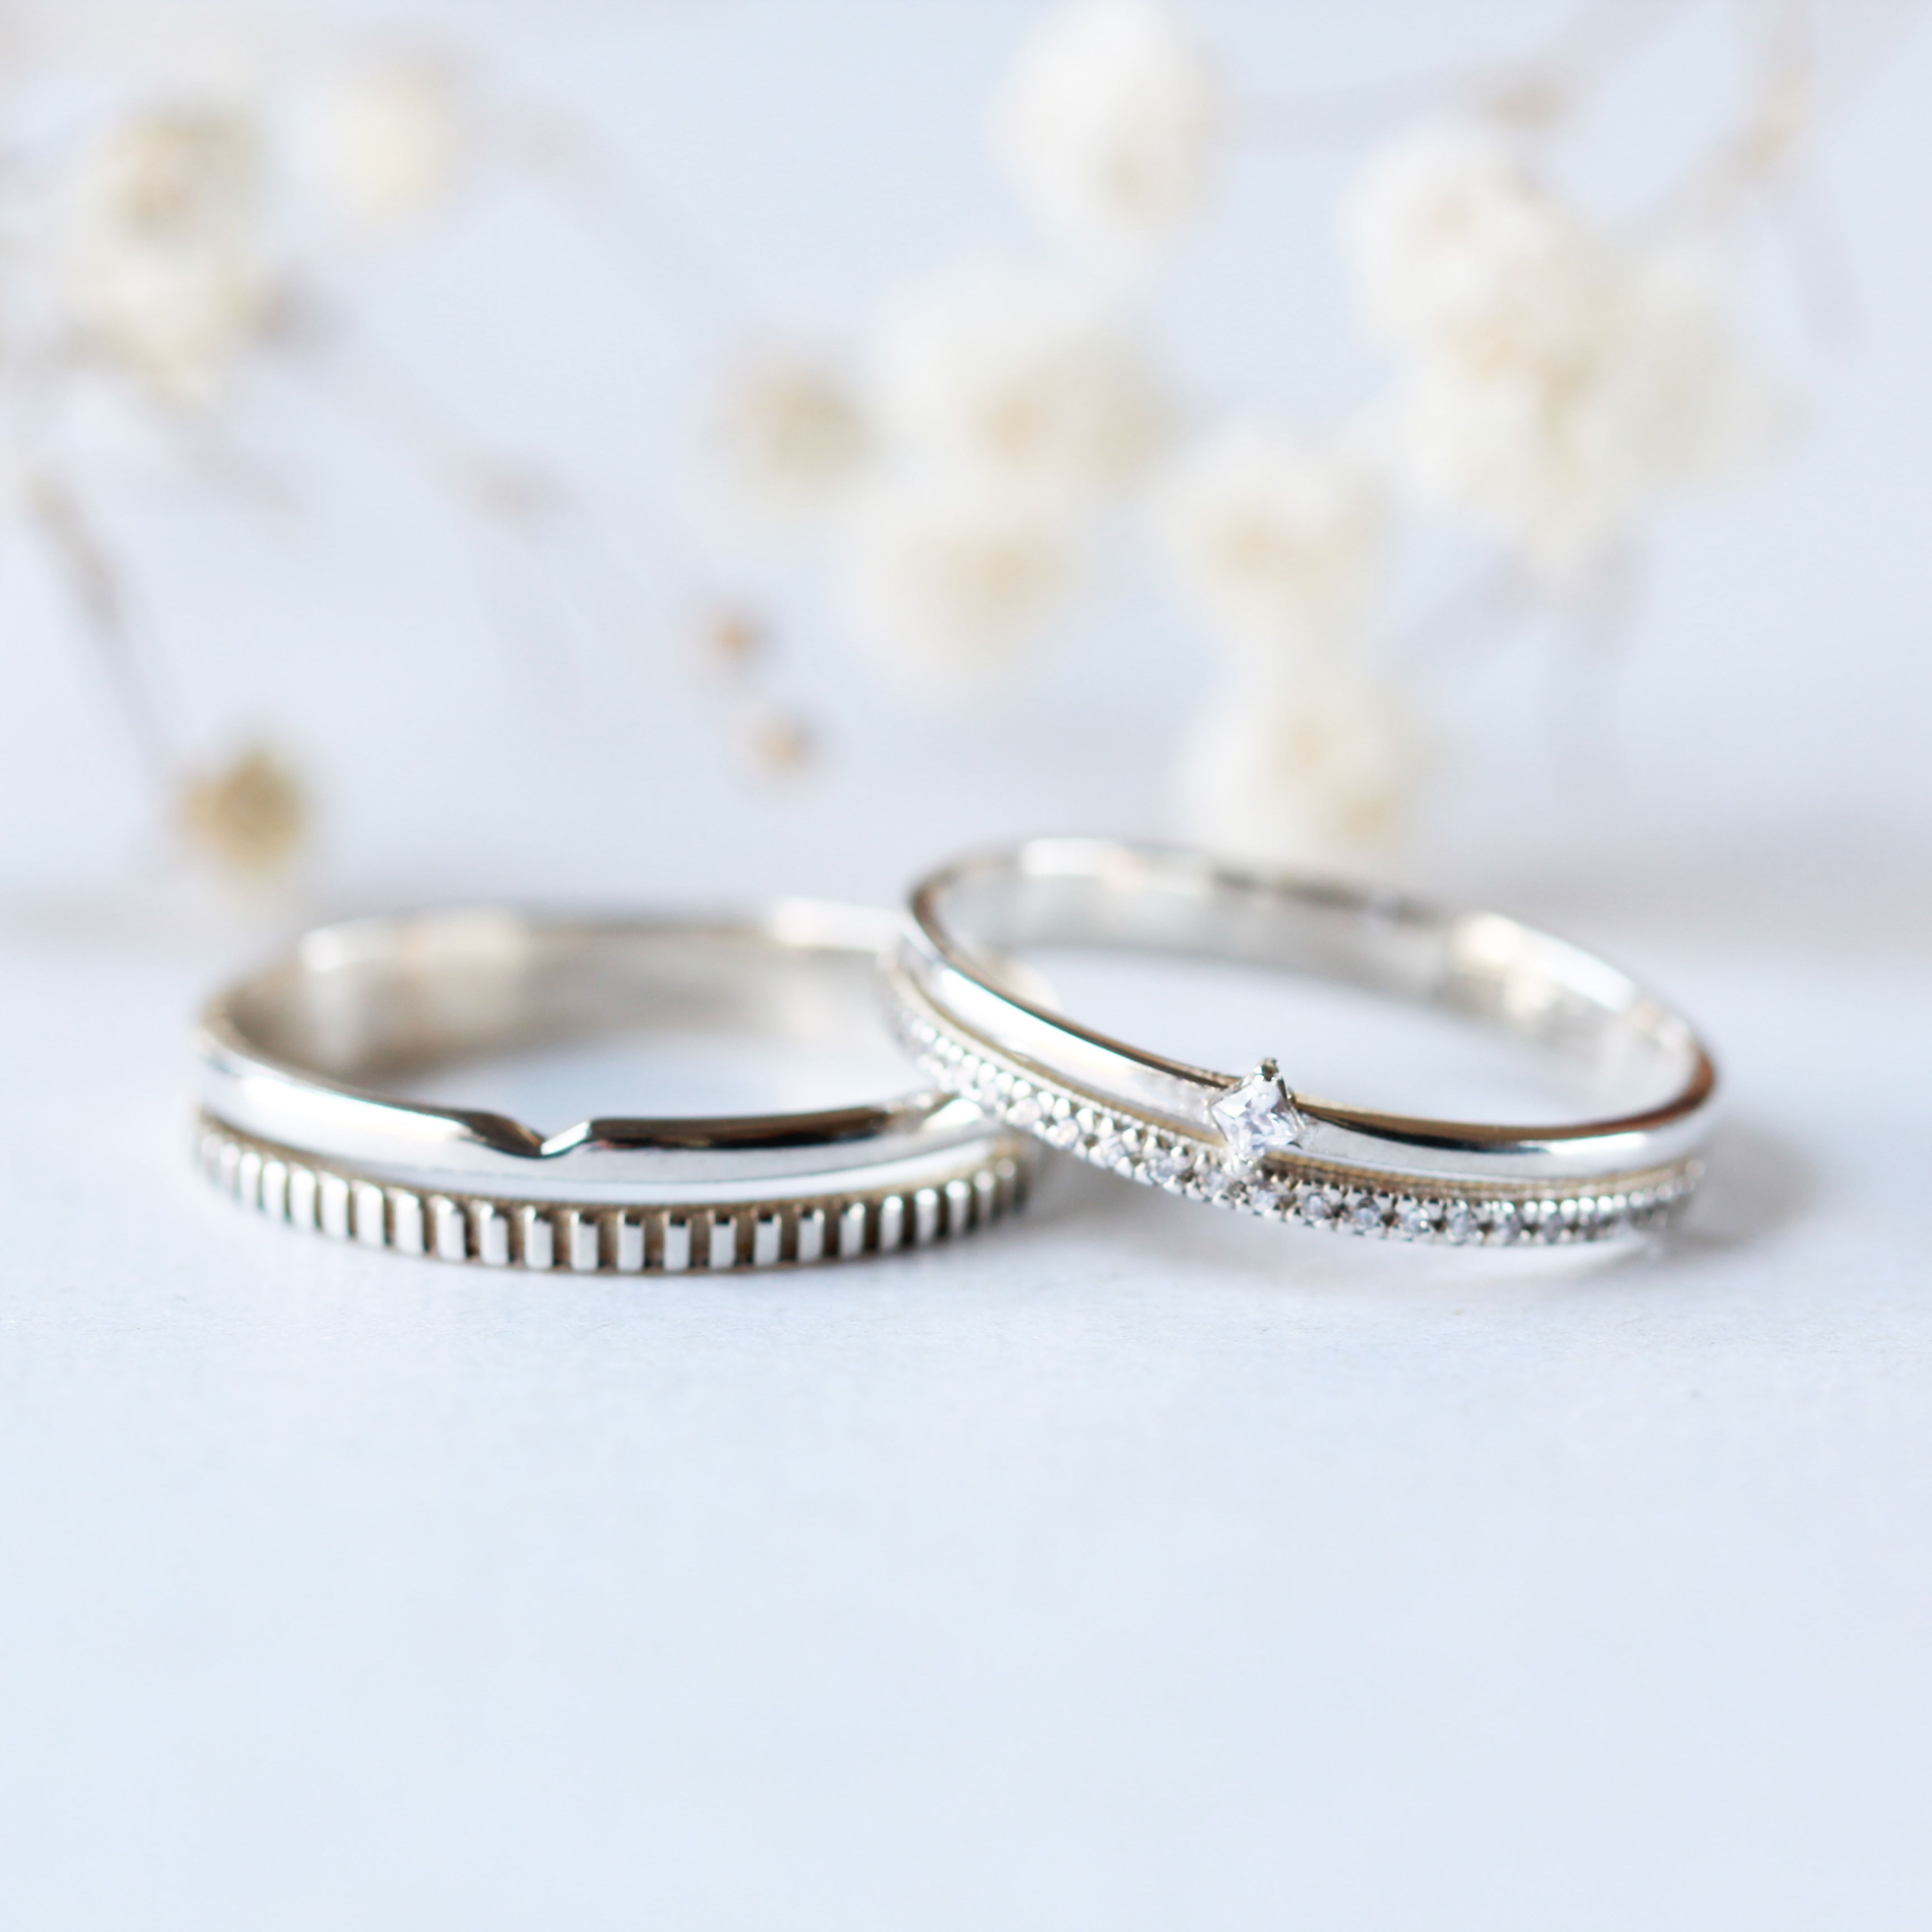 Geometric Wedding Band Alternative Wedding Ring Simple His And Hers Ring Promise Ring Couple Ri Couple Wedding Rings Couples Ring Set Alternative Wedding Rings